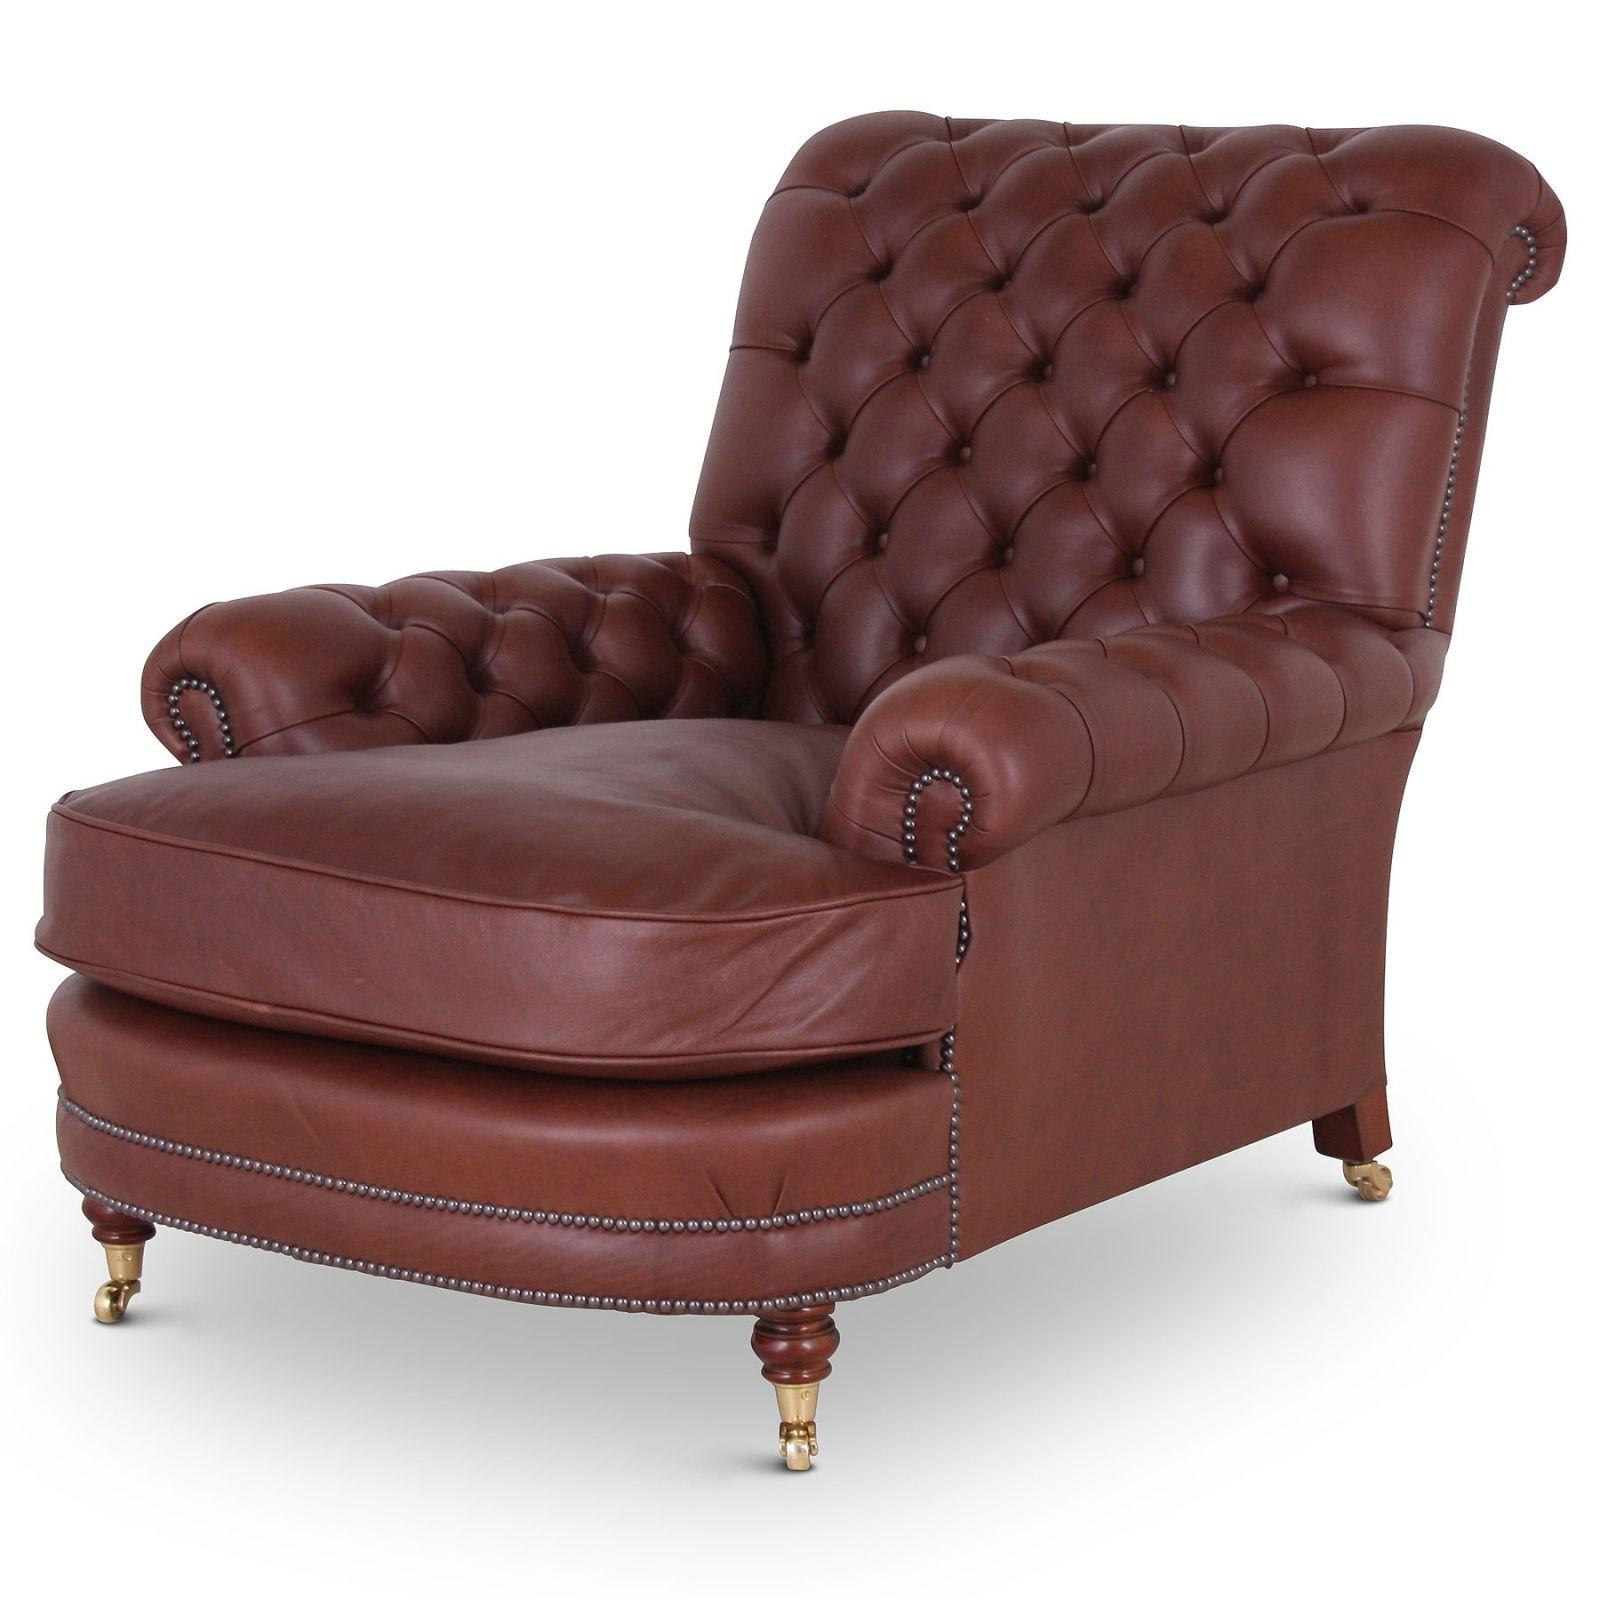 Shaftesbury antique style buttoned leather chair